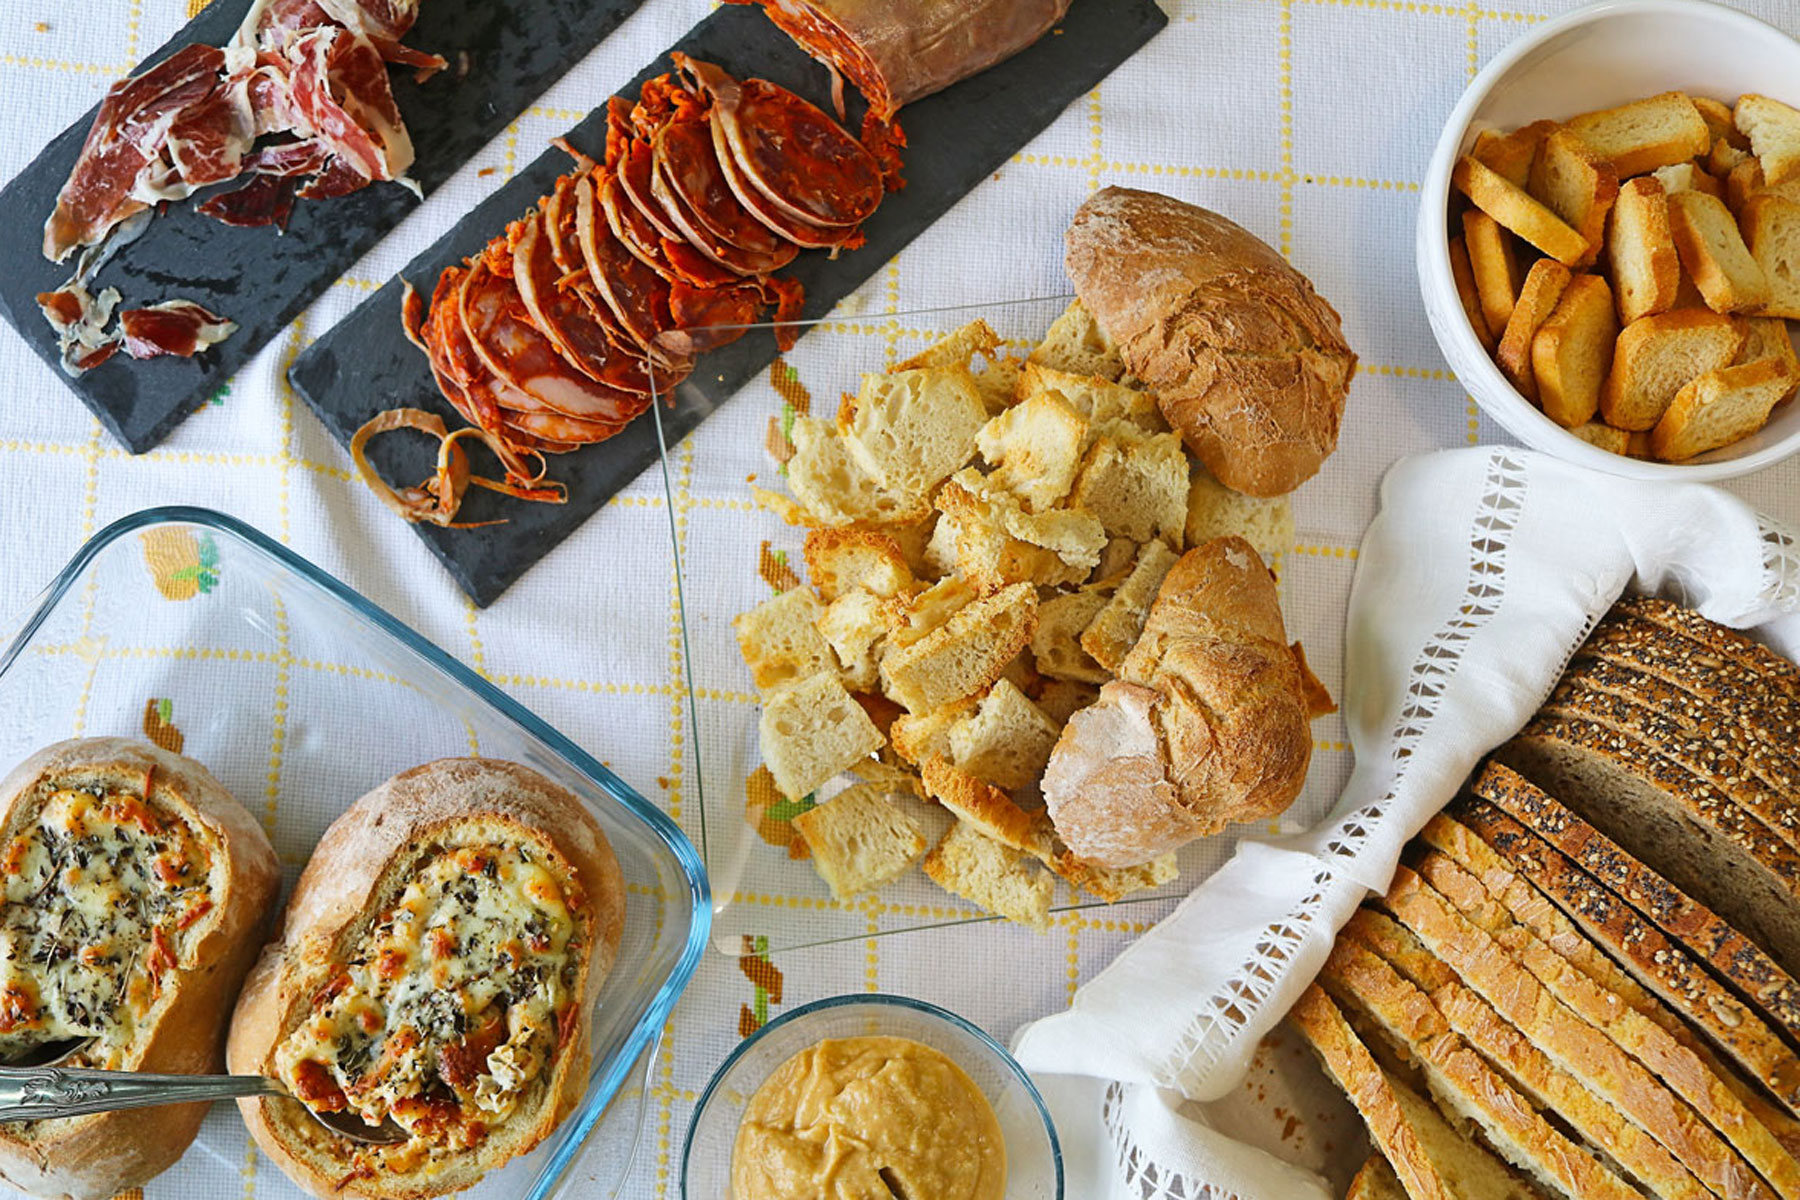 Bread and meats web